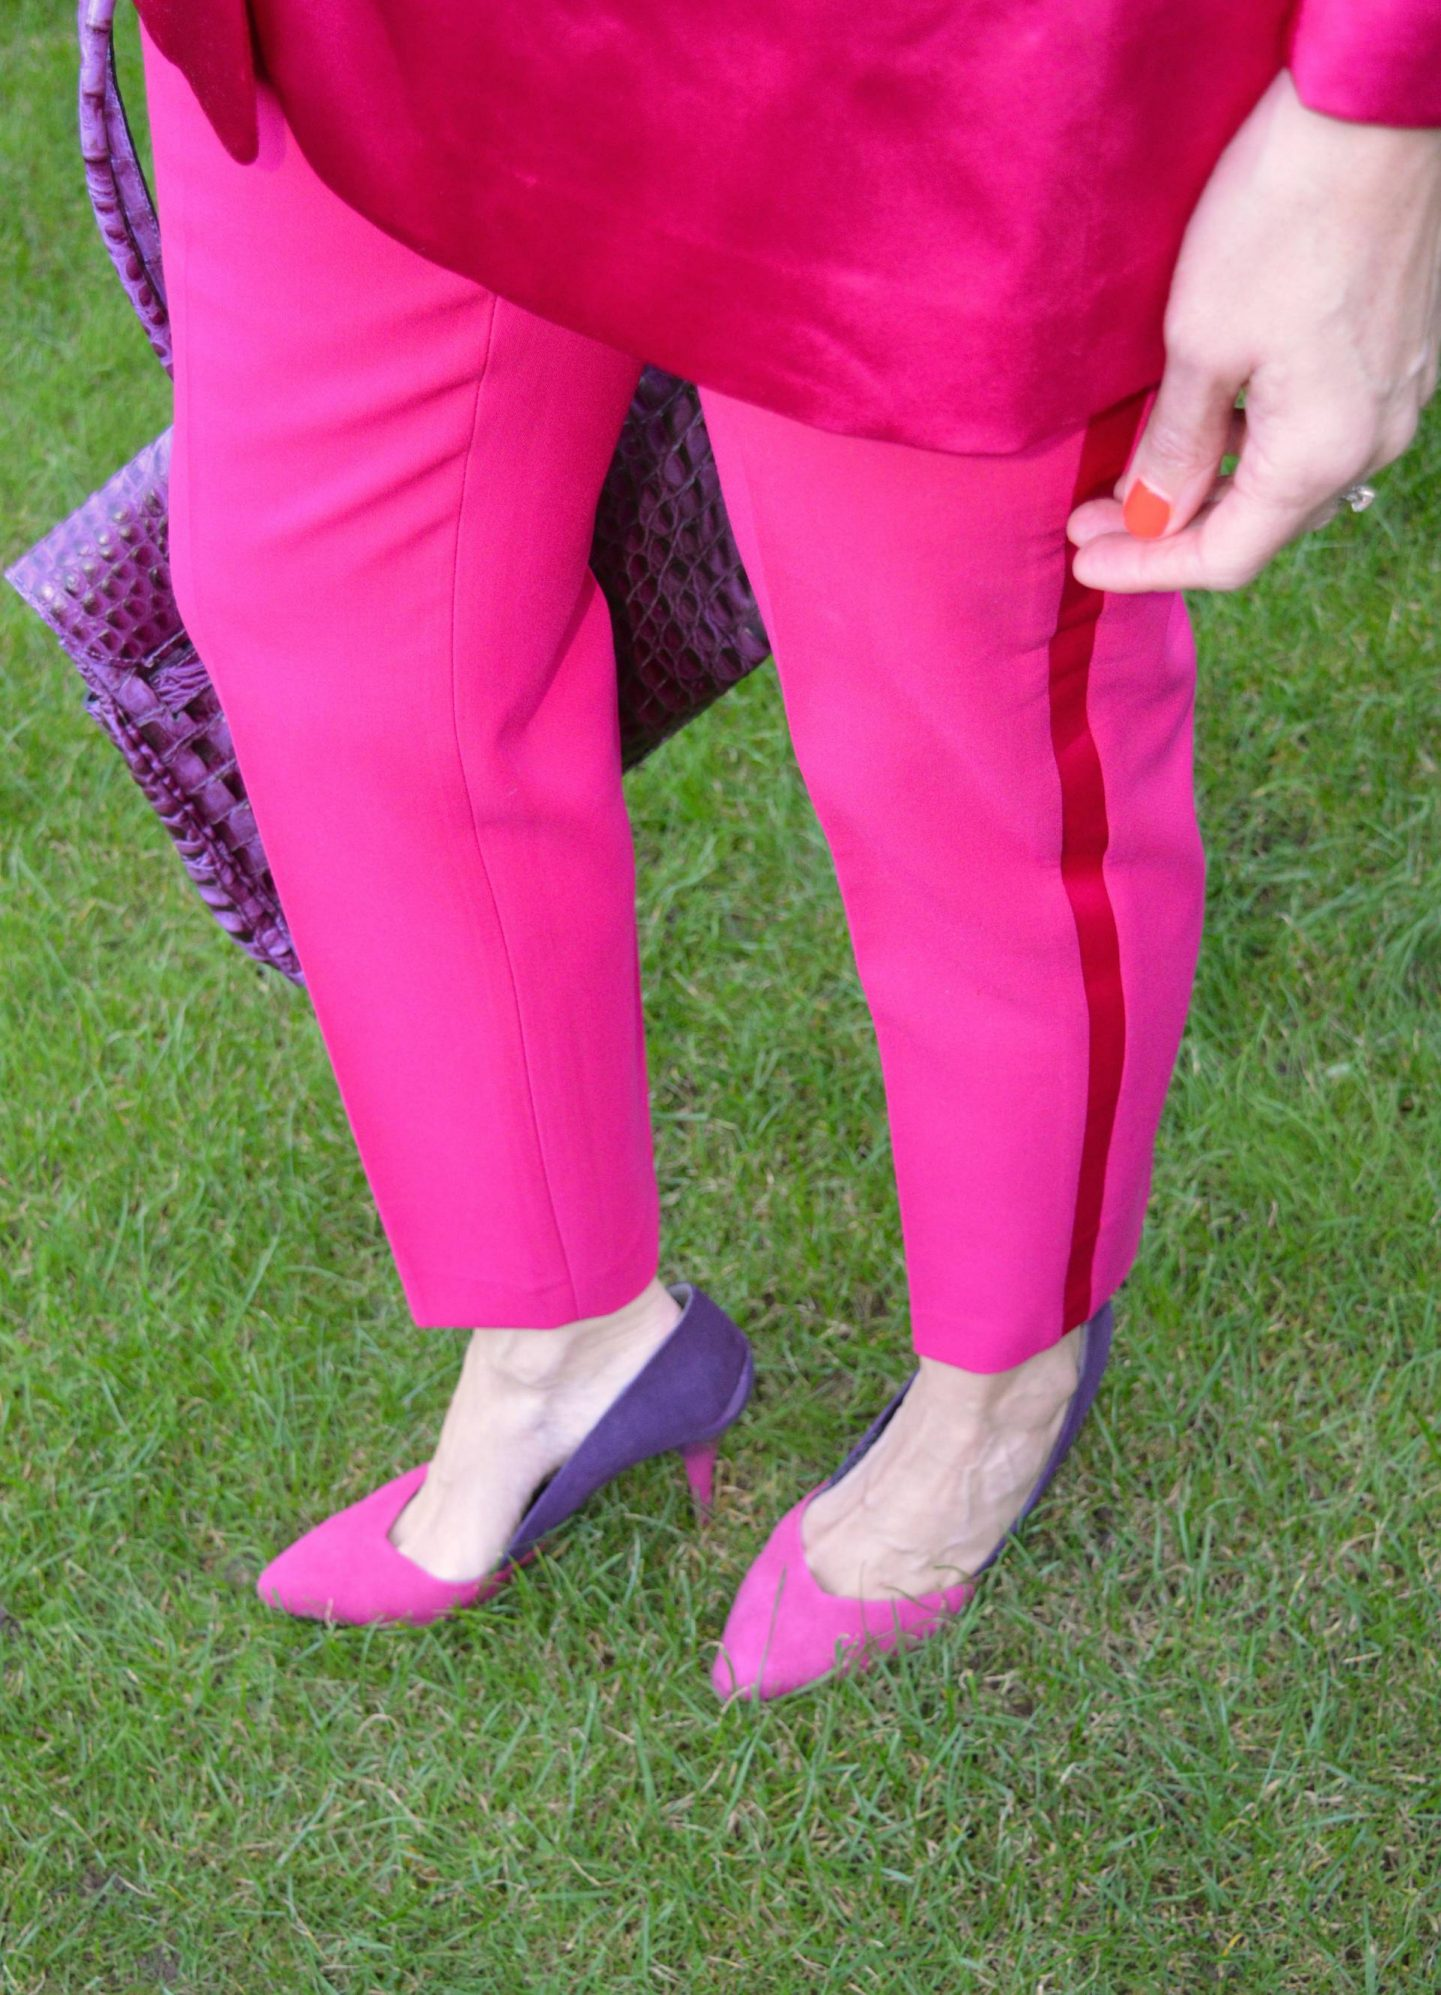 Zara pink trousers, New Look two tone pink and purple shoes